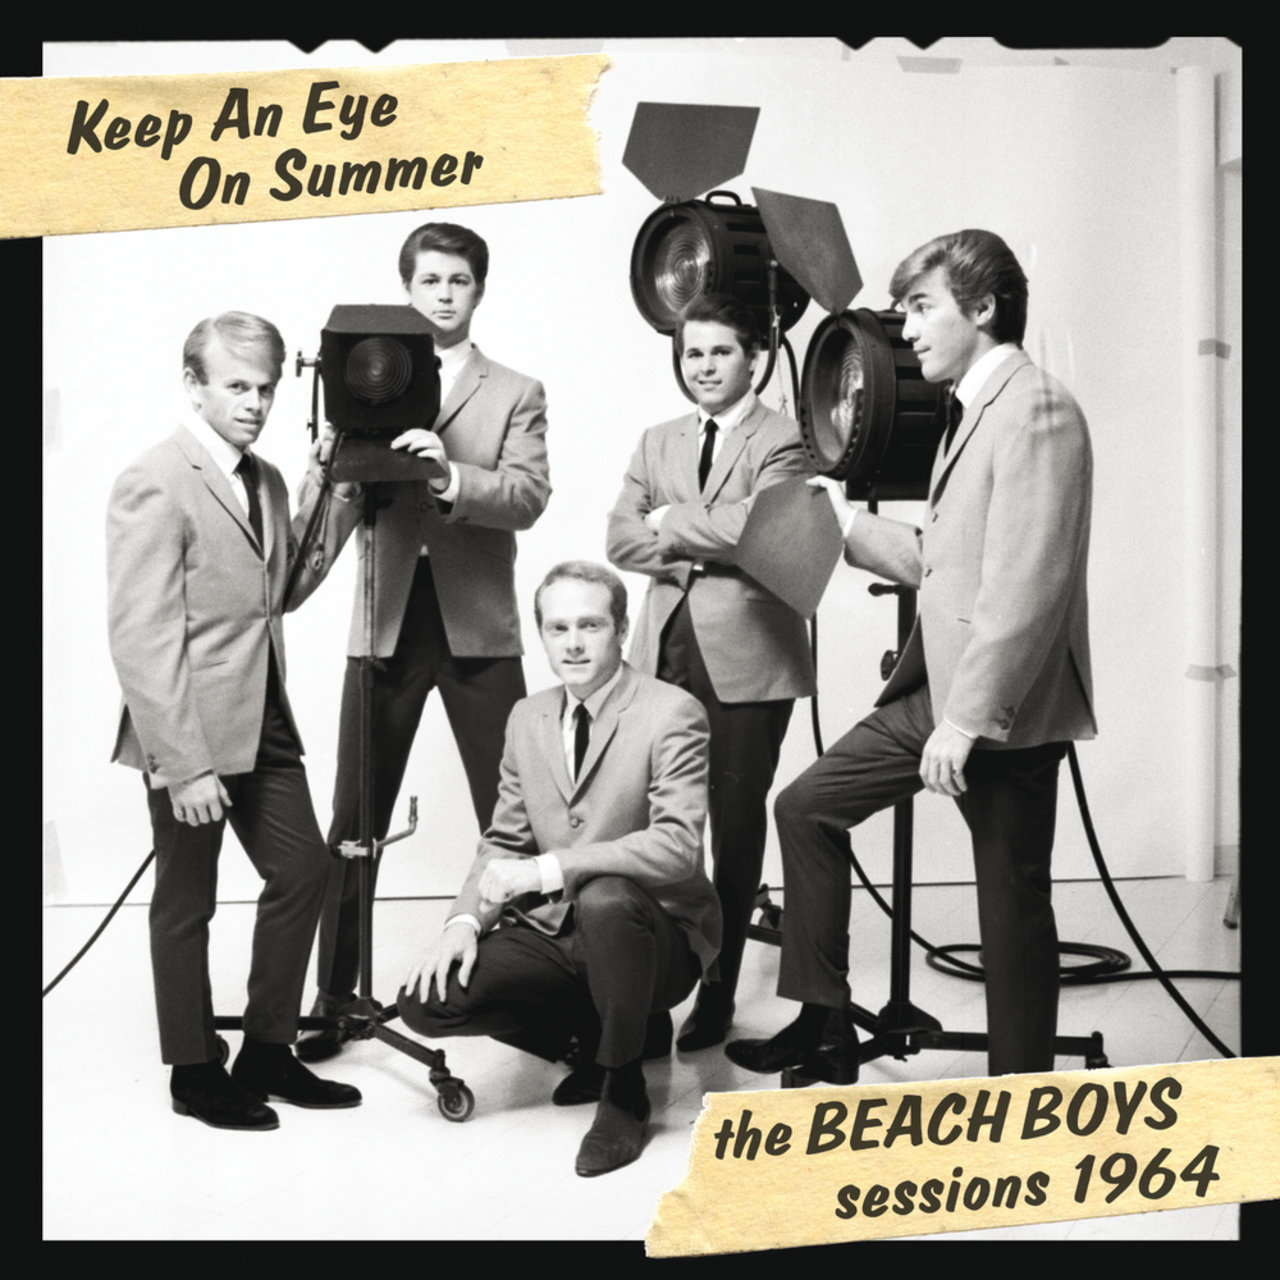 Keep An Eye On Summer - The Beach Boys Sessions 1964